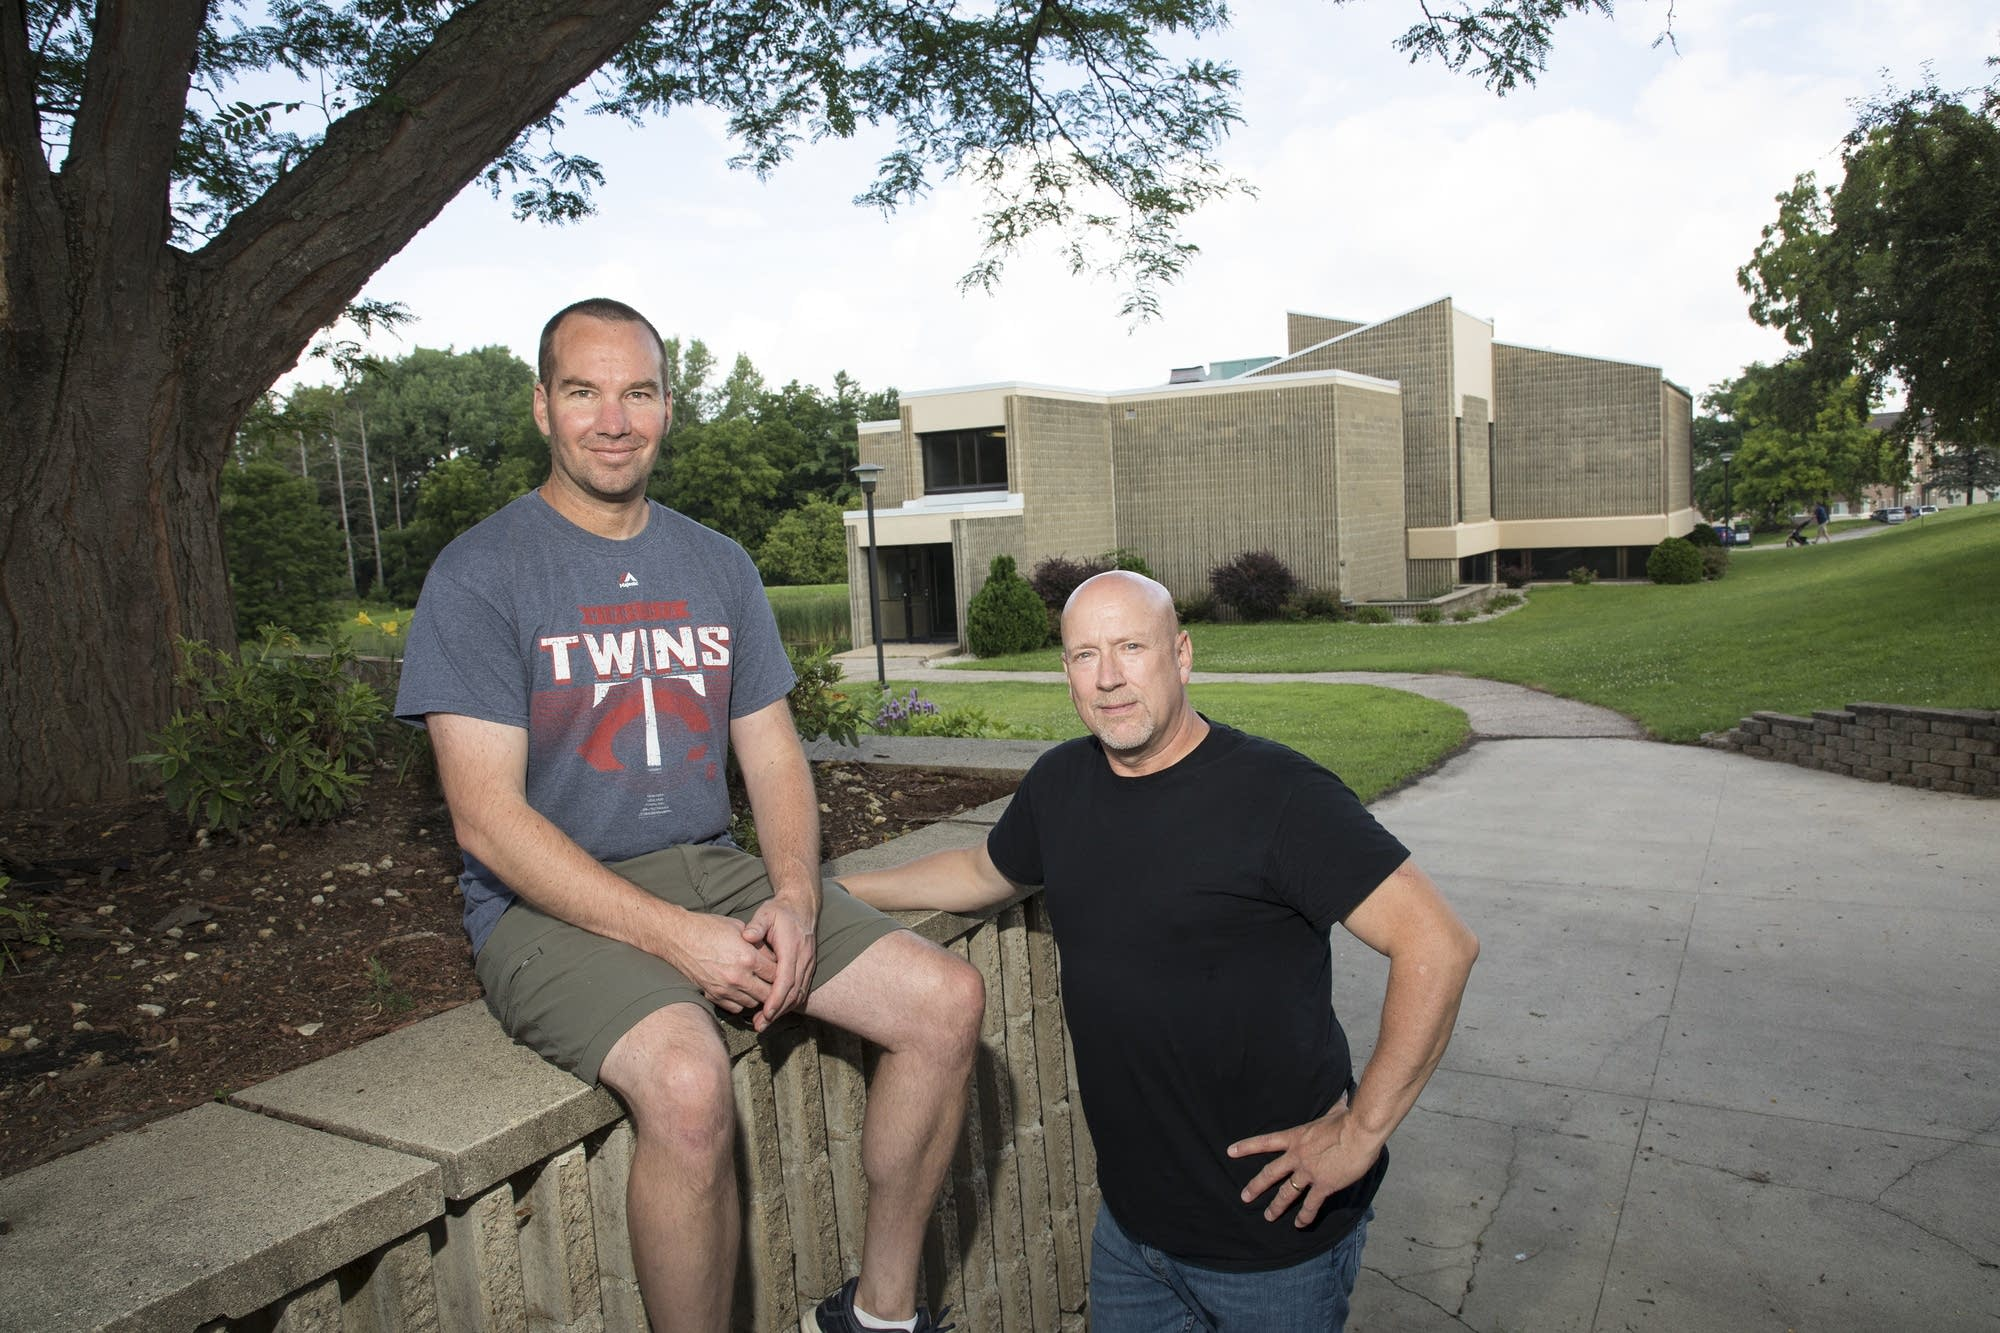 Pastors Jeff Urban, left, and Aaron Wager, at Bear Creek Christian Church